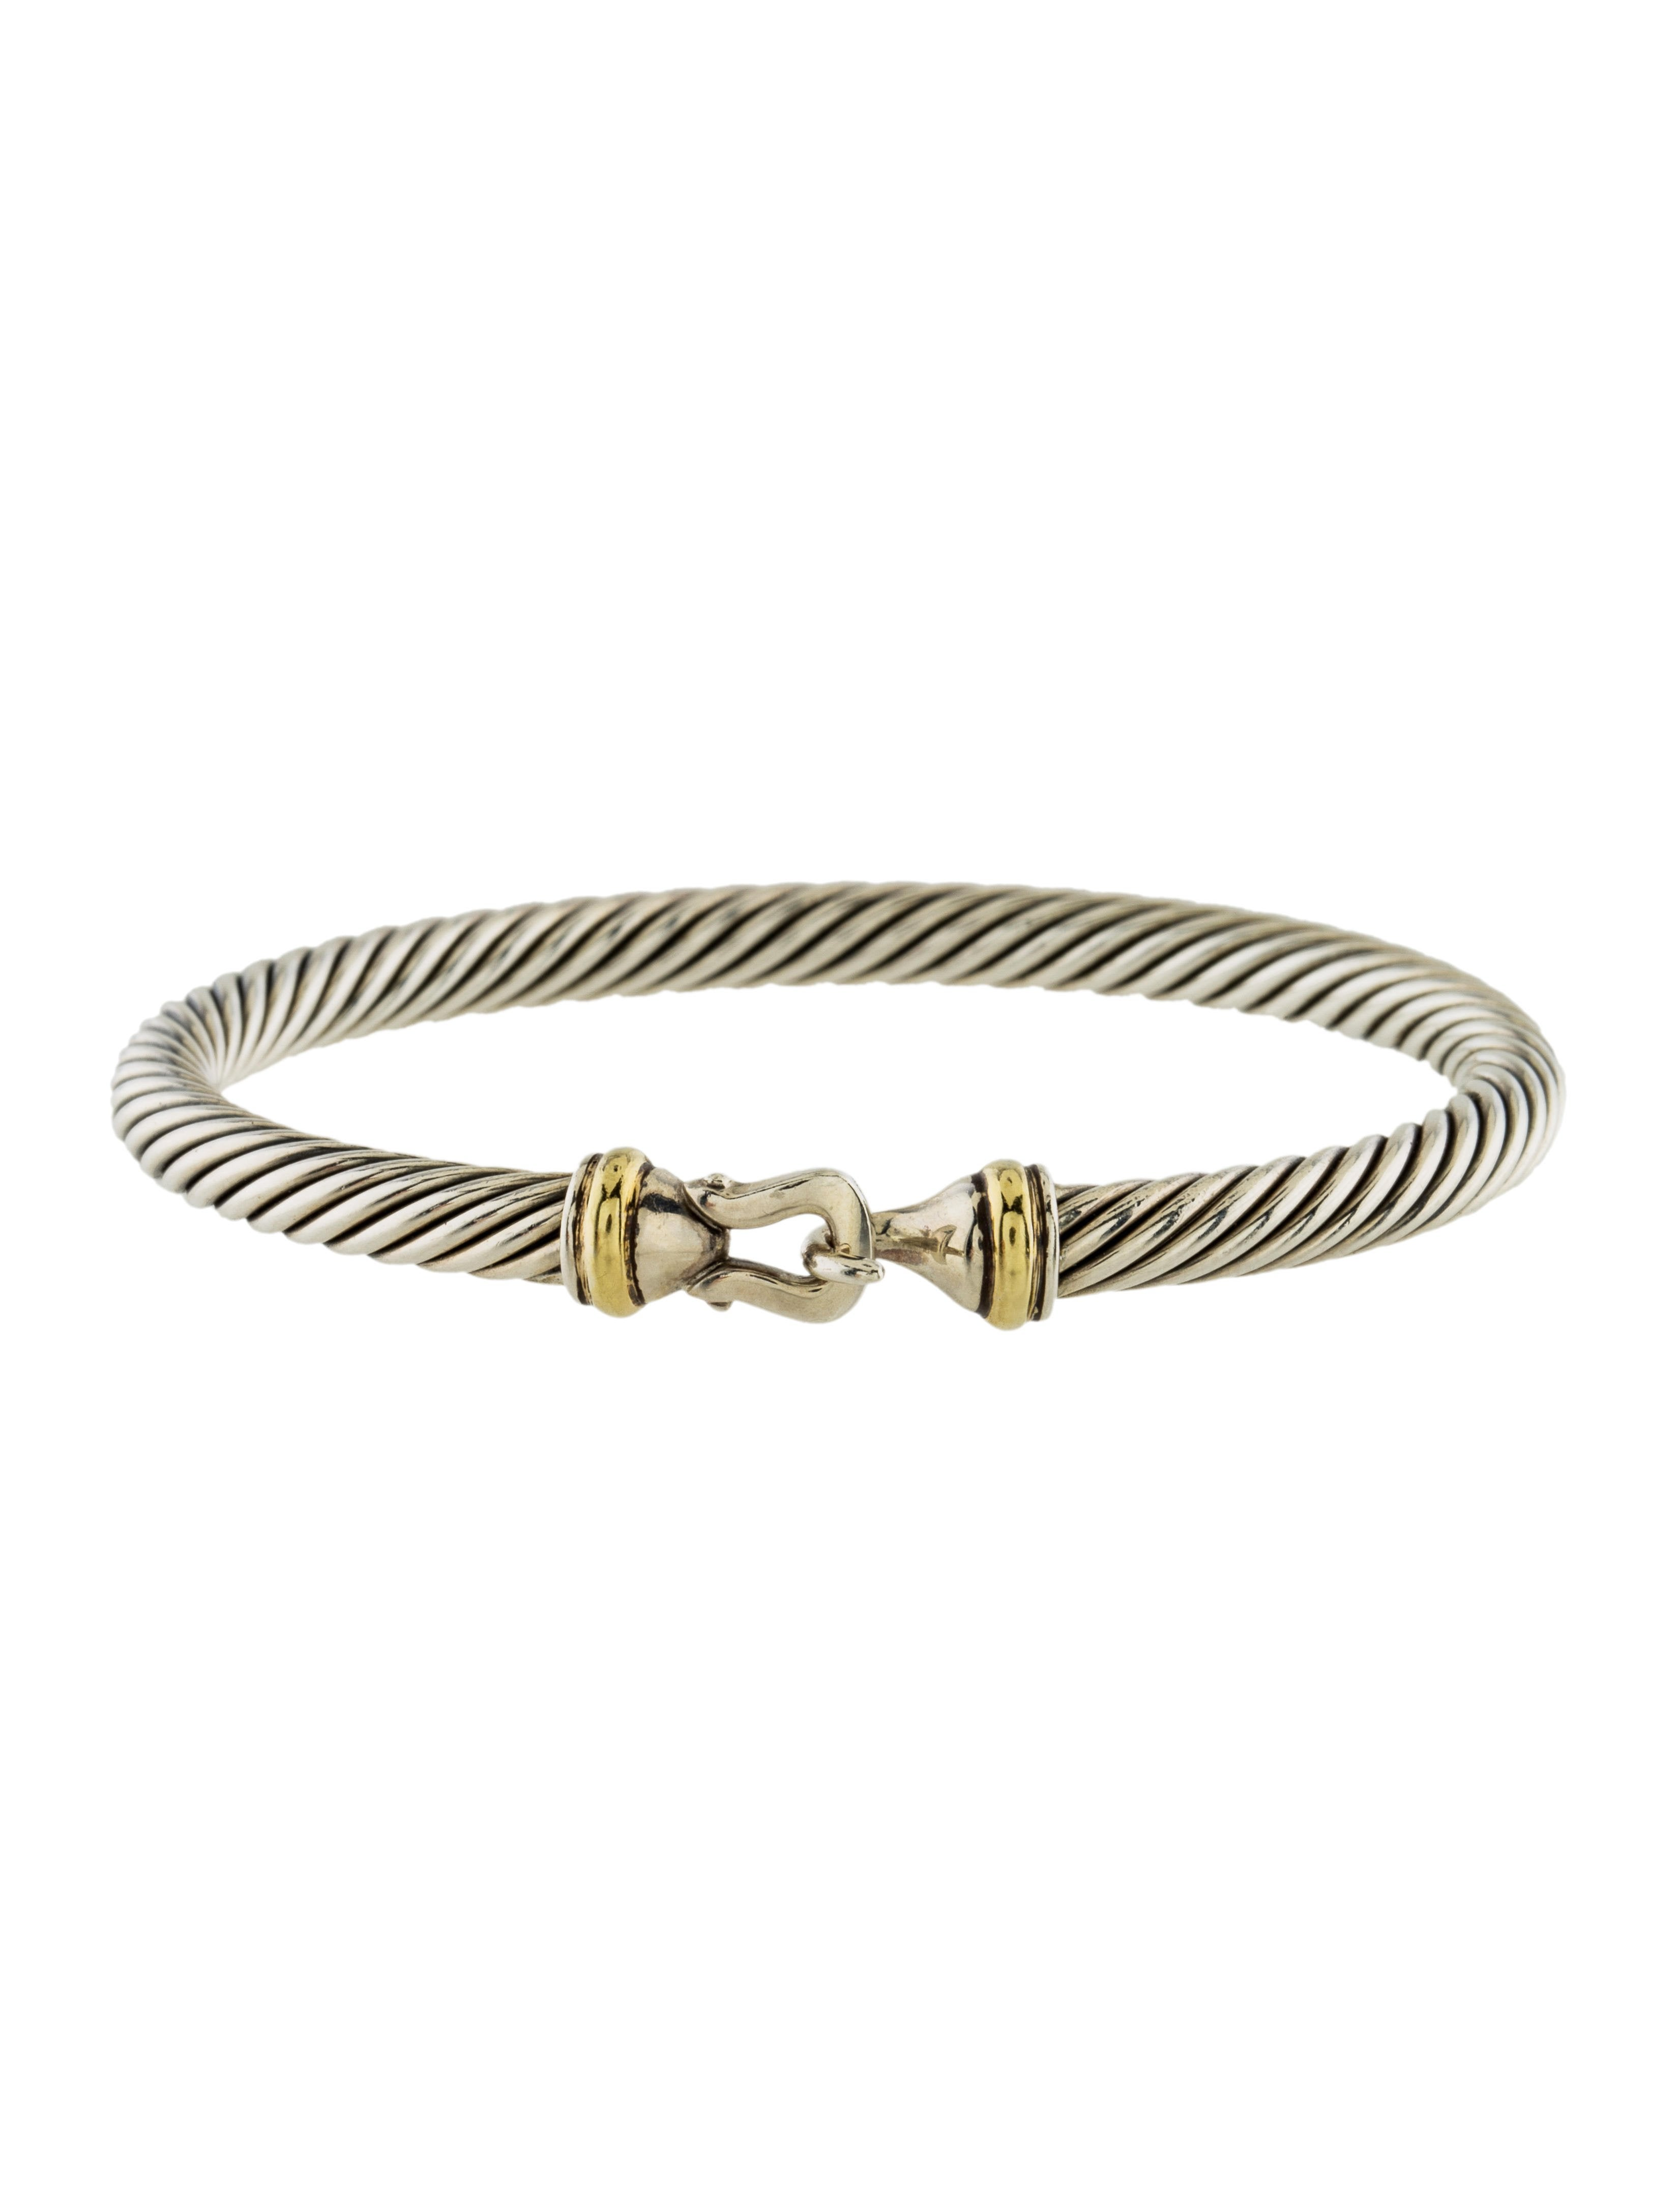 David yurman cable classic buckle bracelet bracelets for David yurman inspired bracelet cable